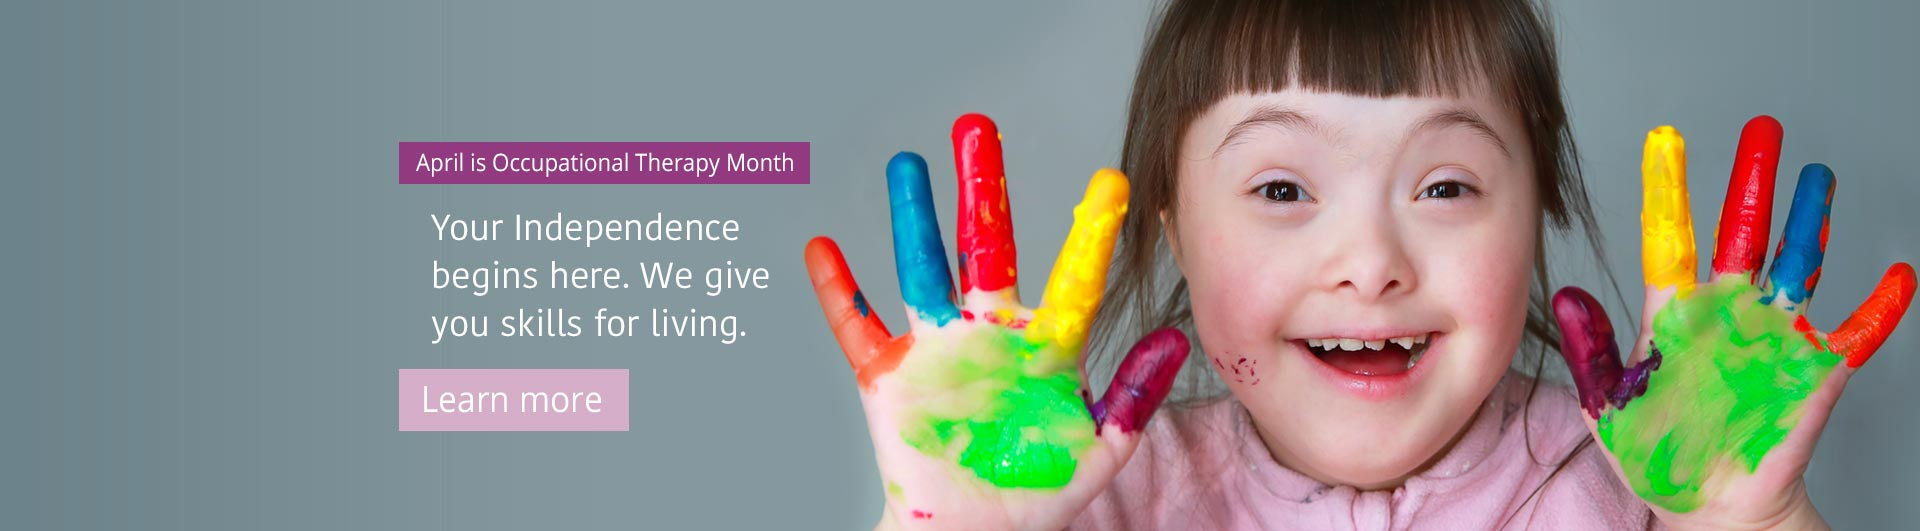 Occupational Therapy Month